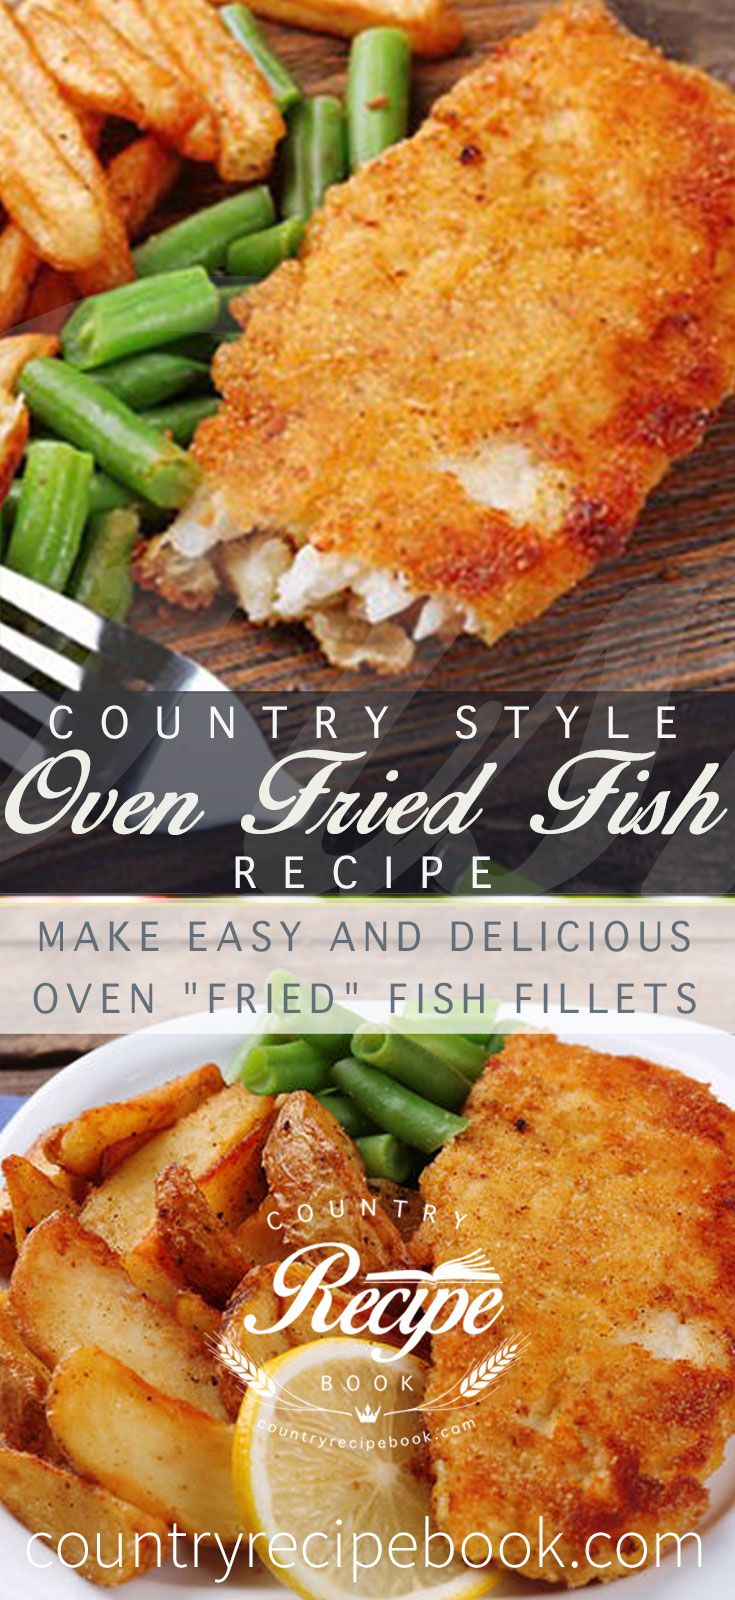 :O Make delicious oven fried fish - Just 10 minutes to make :)